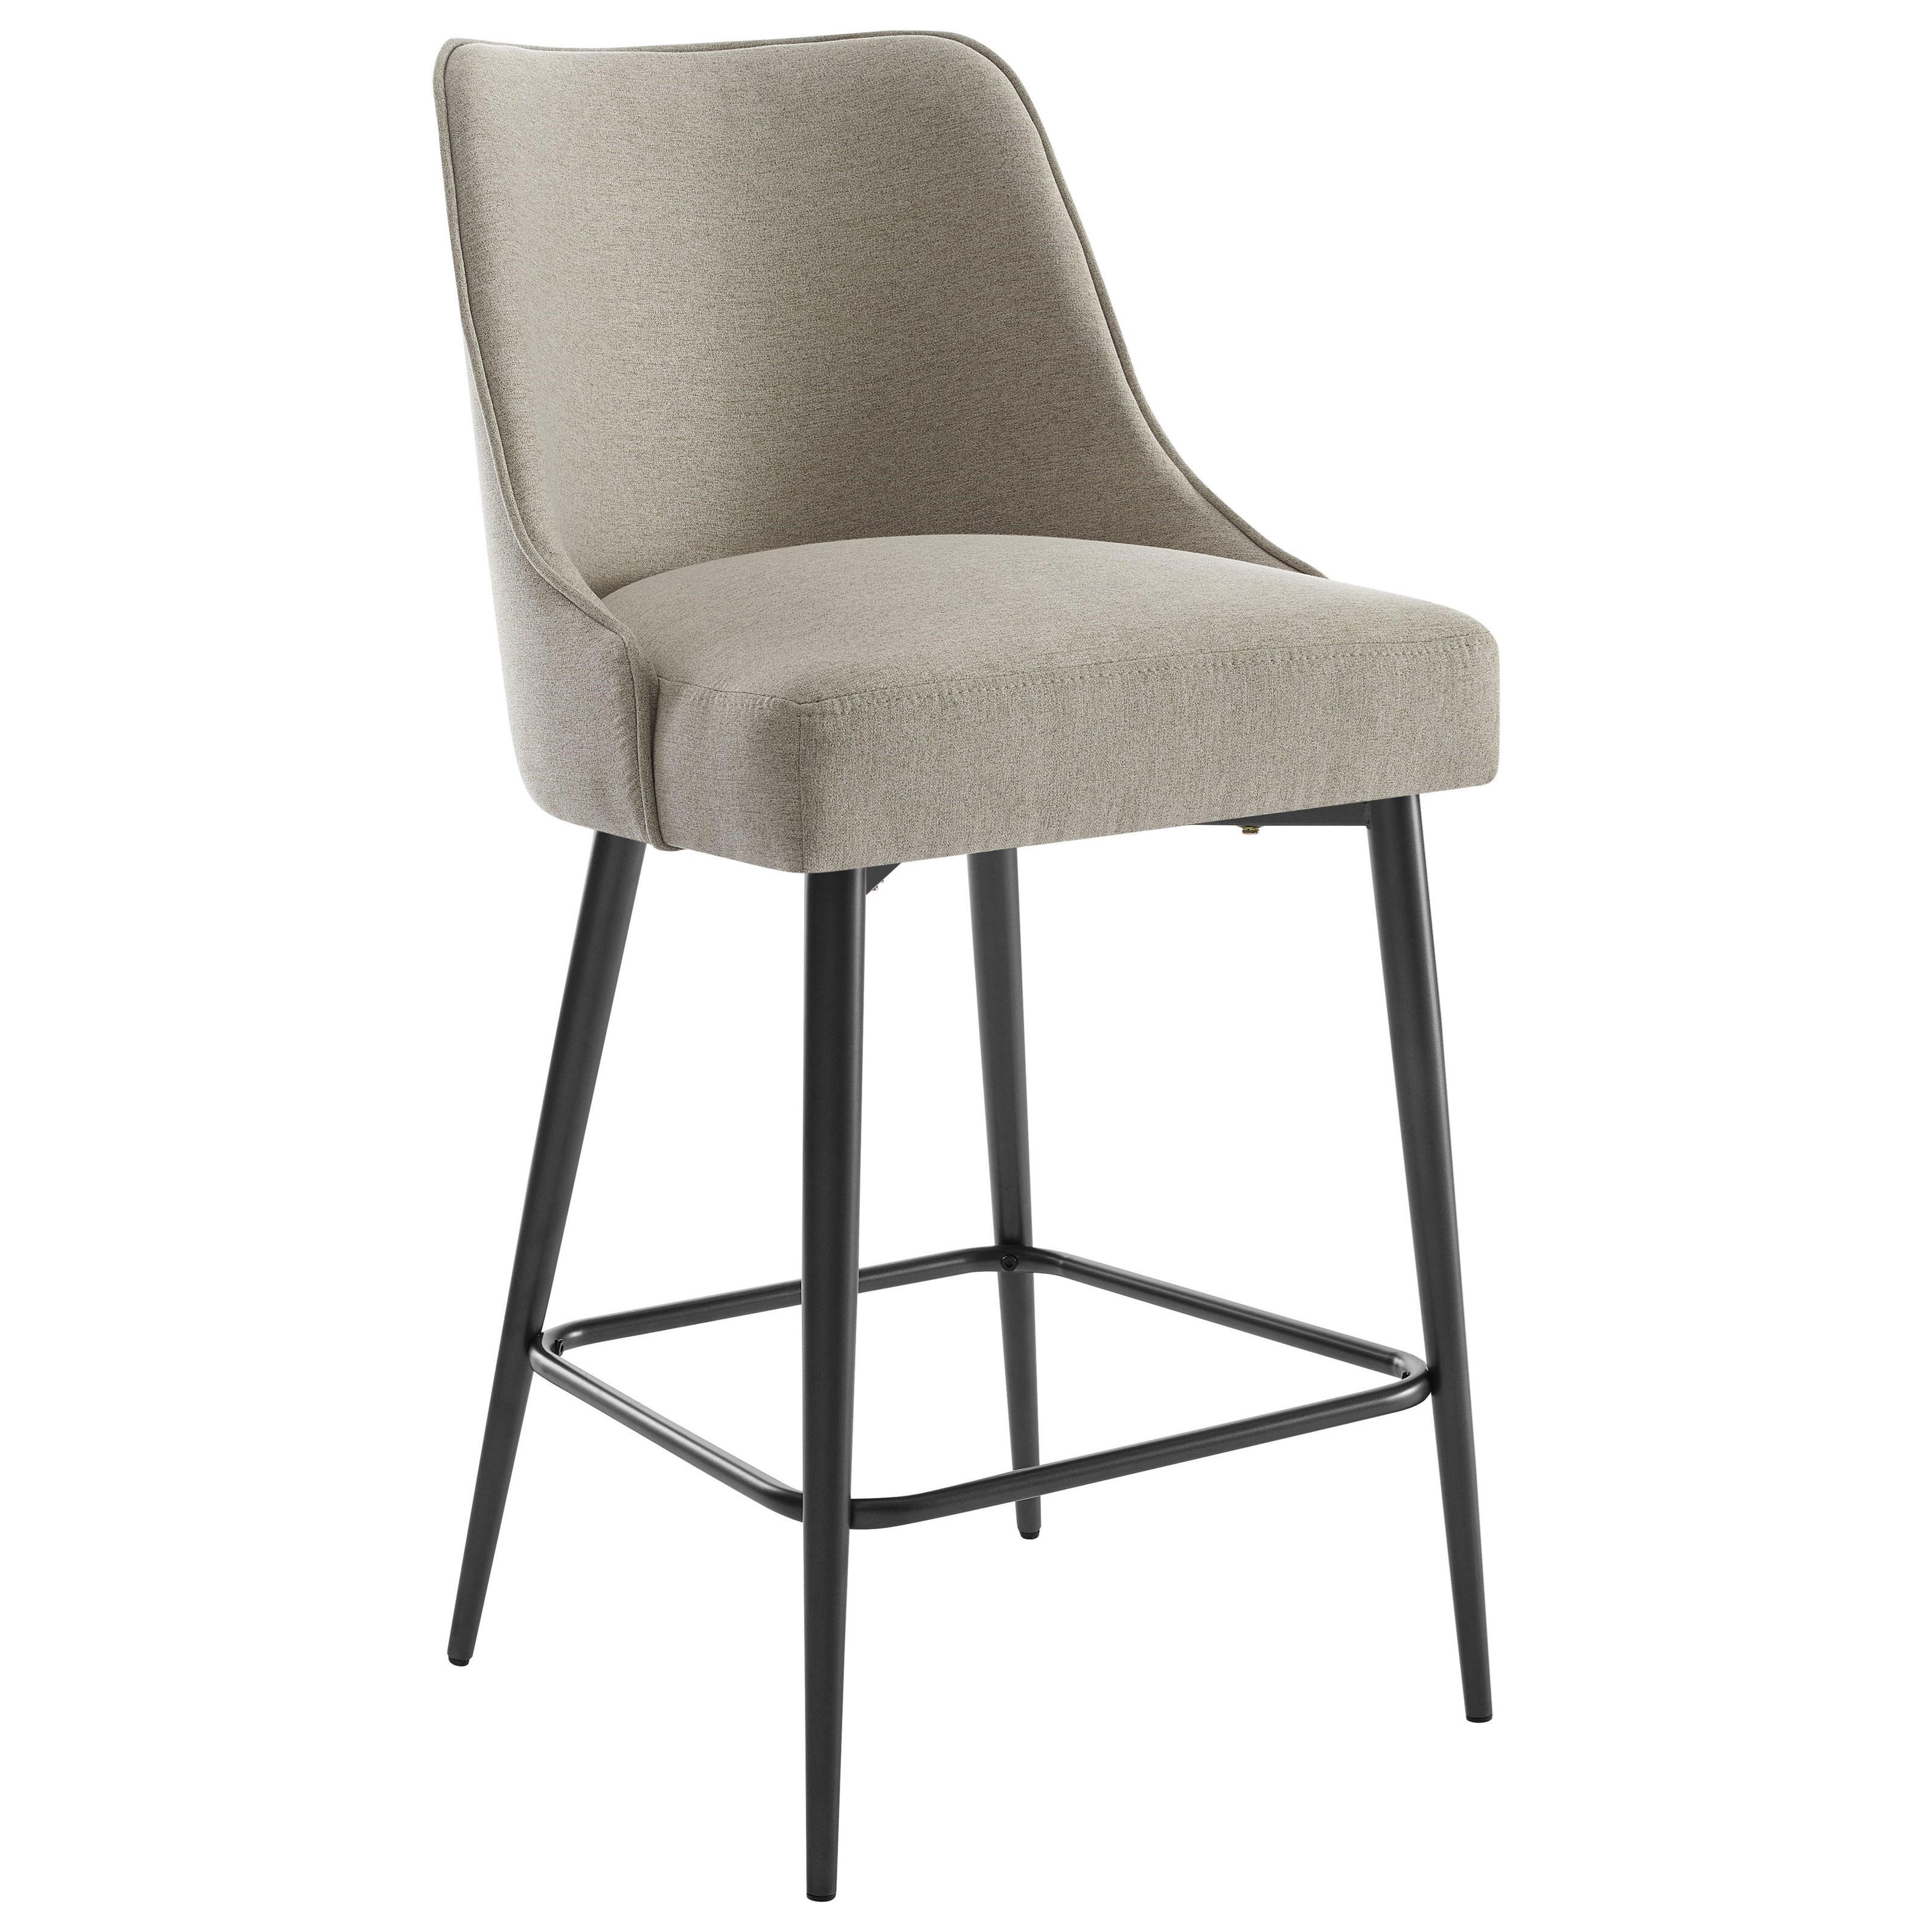 Olson SS Upholstered Counter Chair by Steve Silver at Darvin Furniture